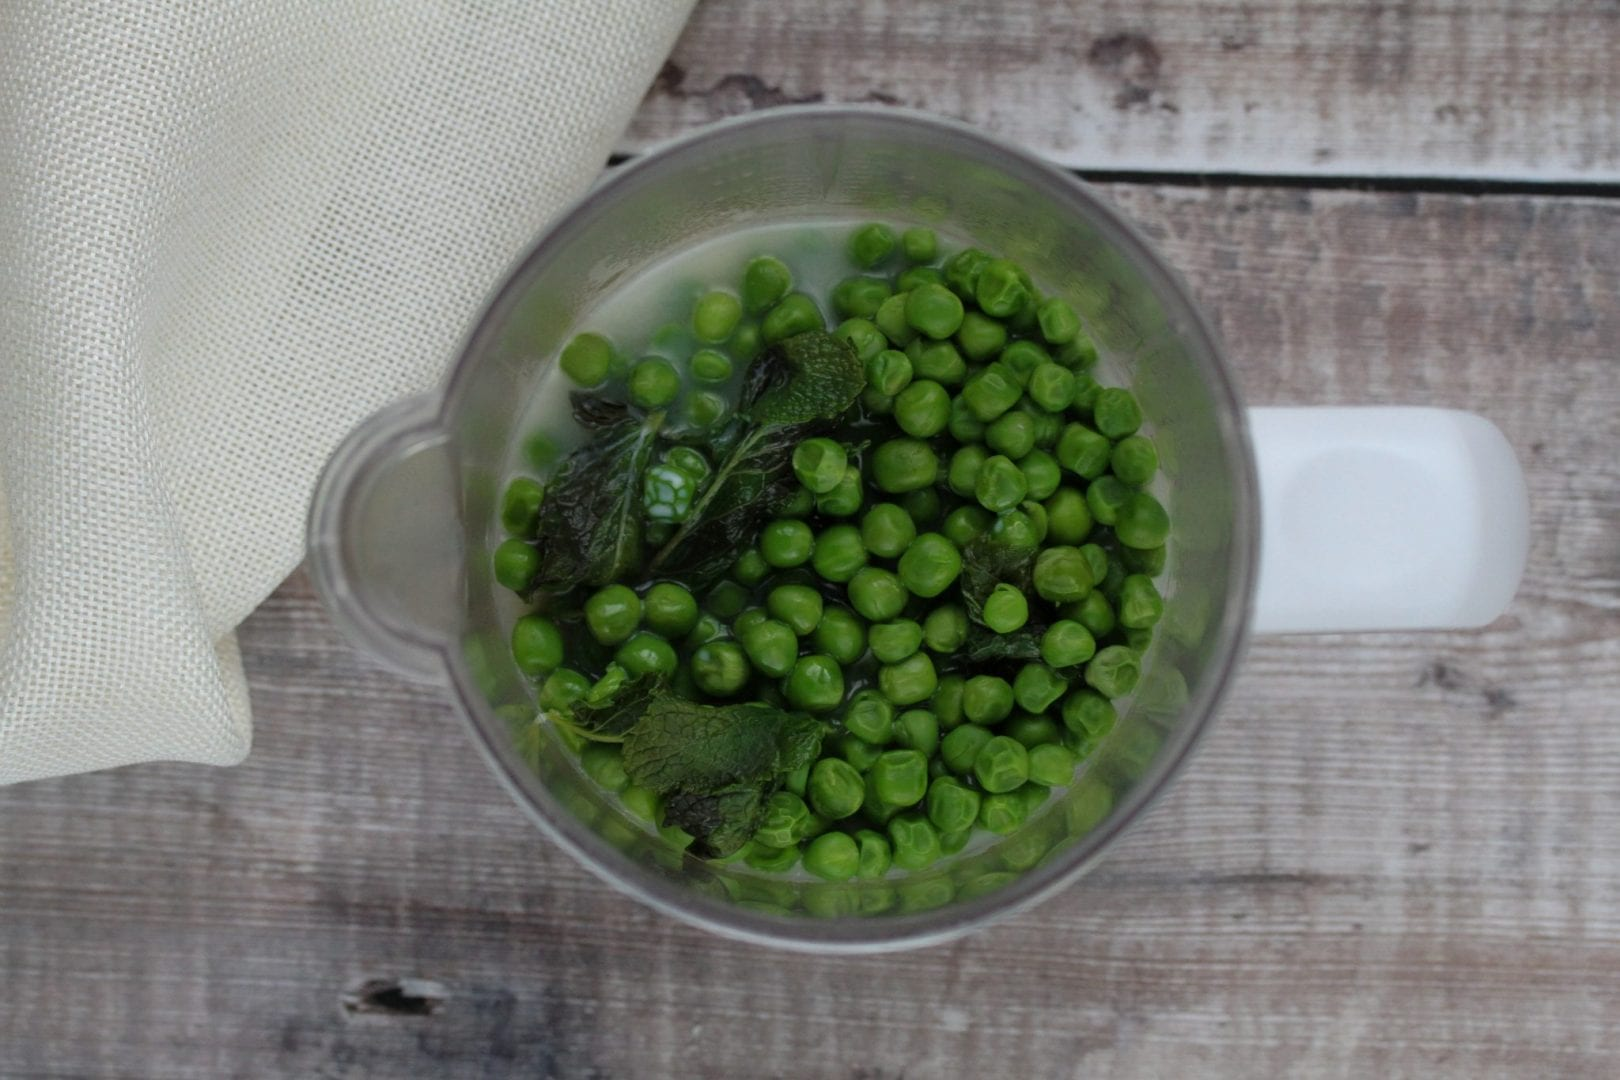 pea soup - pea and mint soup - family recipes - weaning recipes